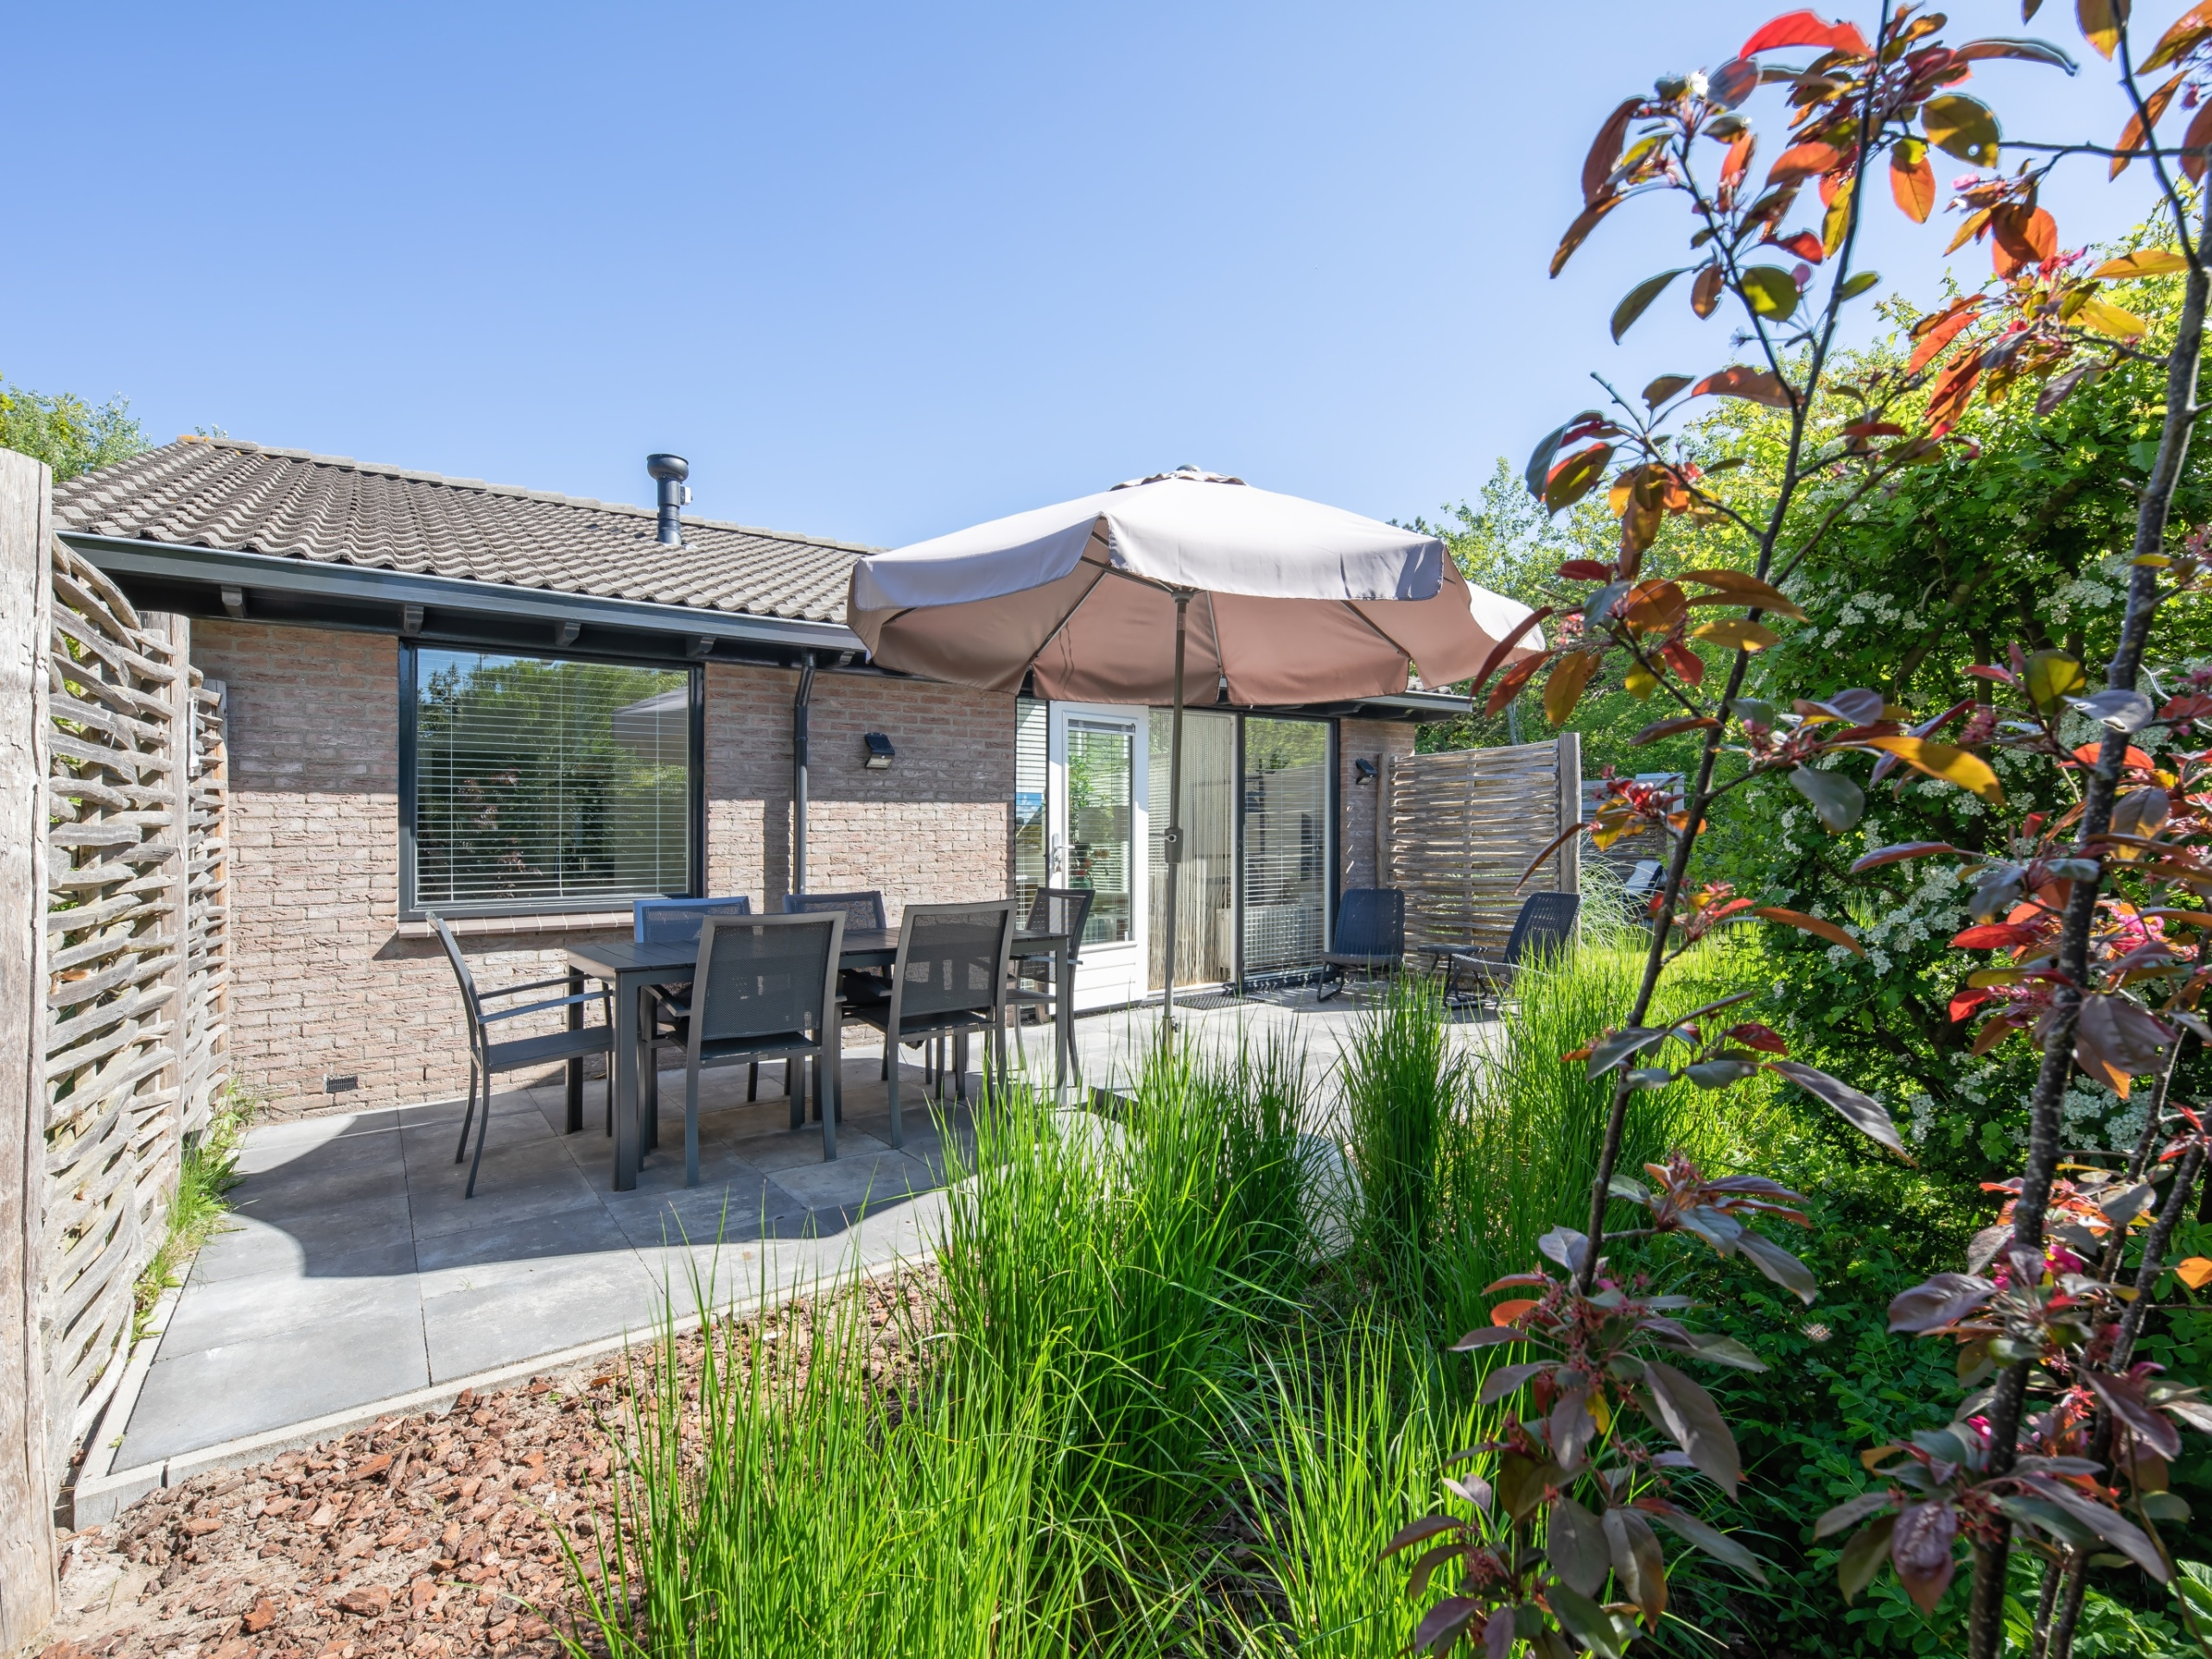 Holiday home in a quiet location on the edge of De Koog on a small park